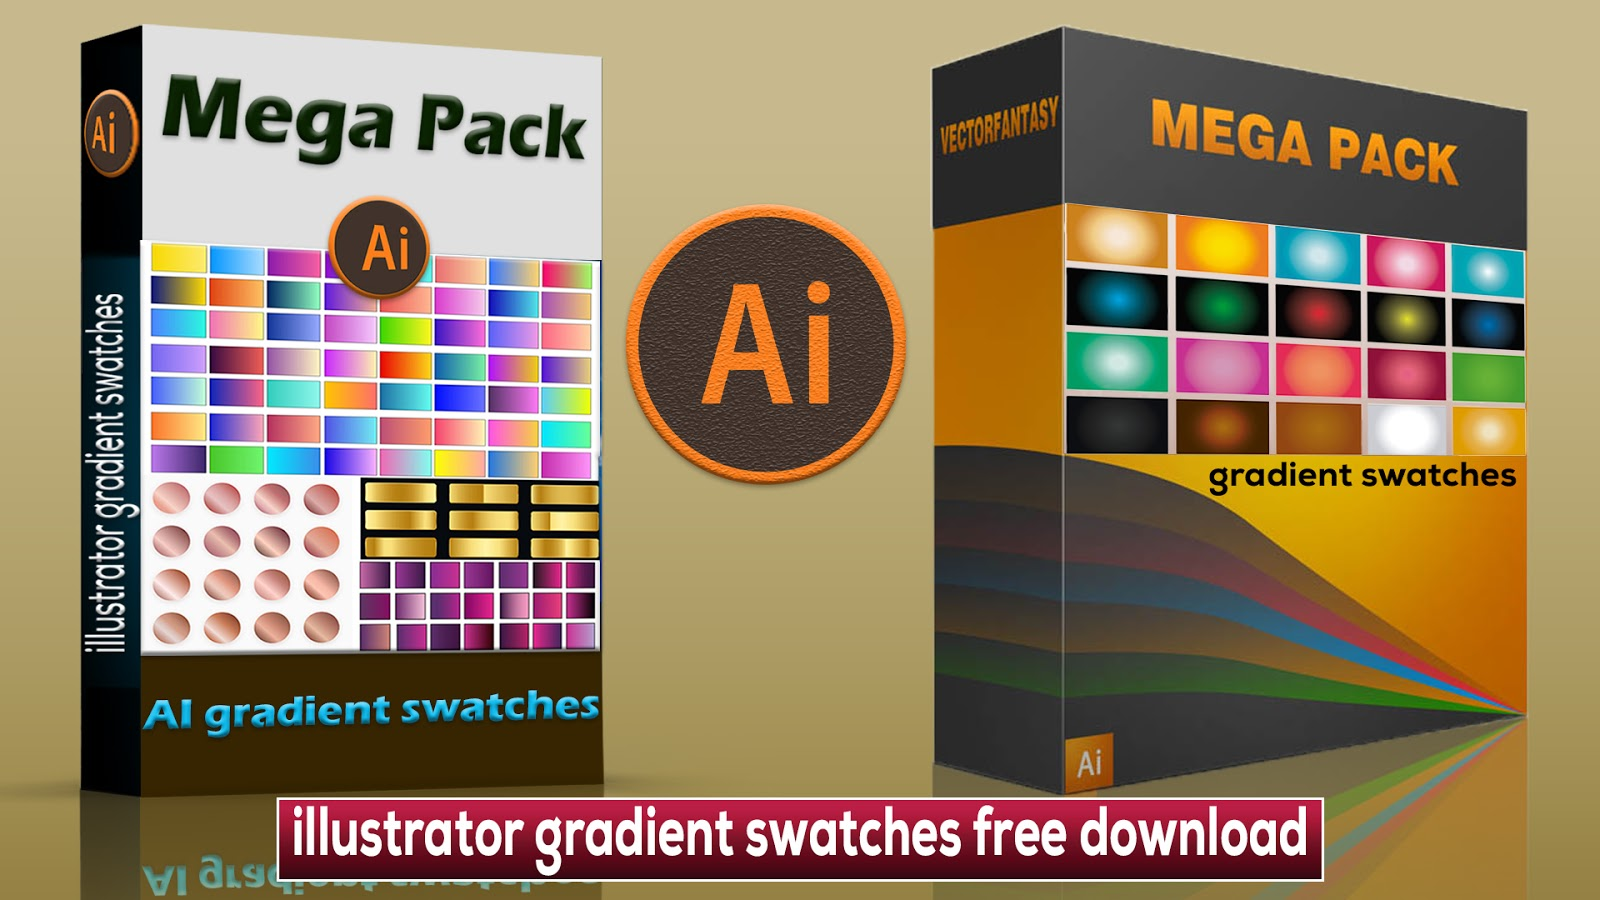 Adobe illustrator gradient swatches free download